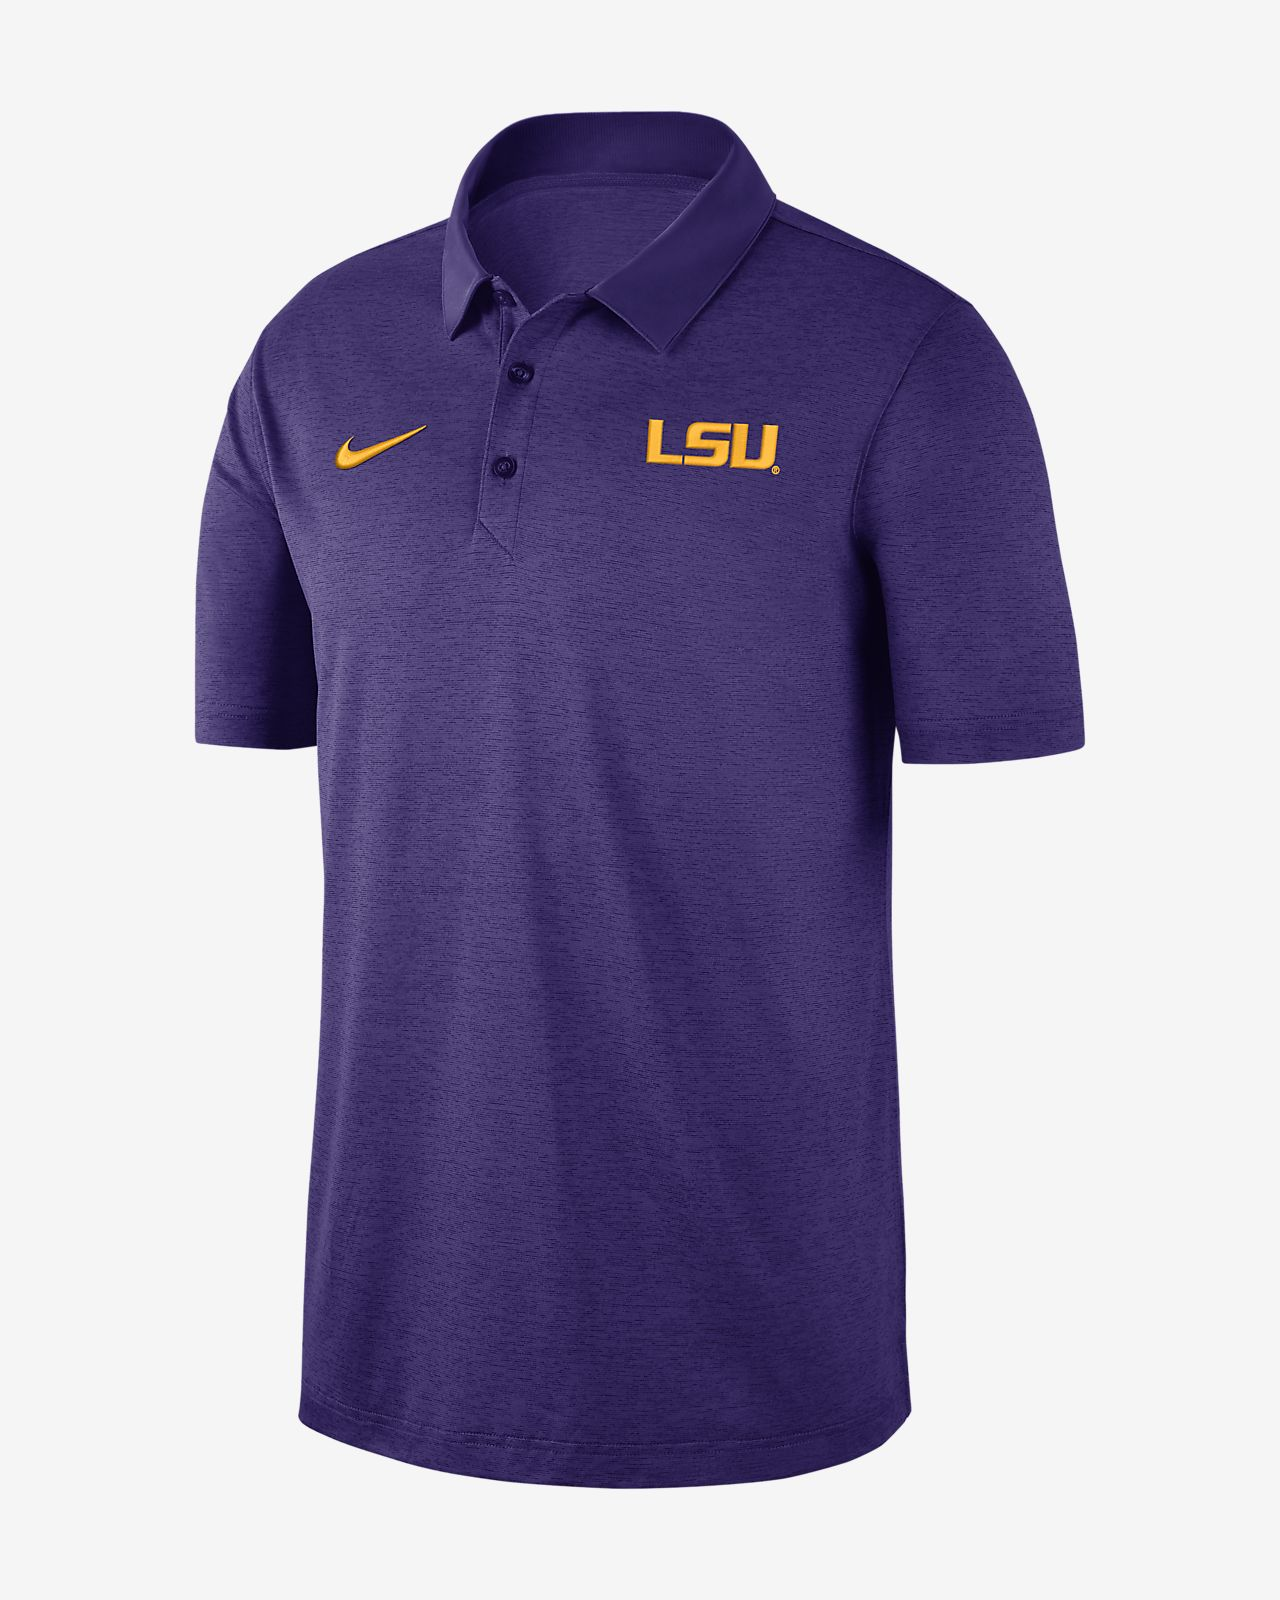 Nike College Dri-FIT (LSU) Men's Polo